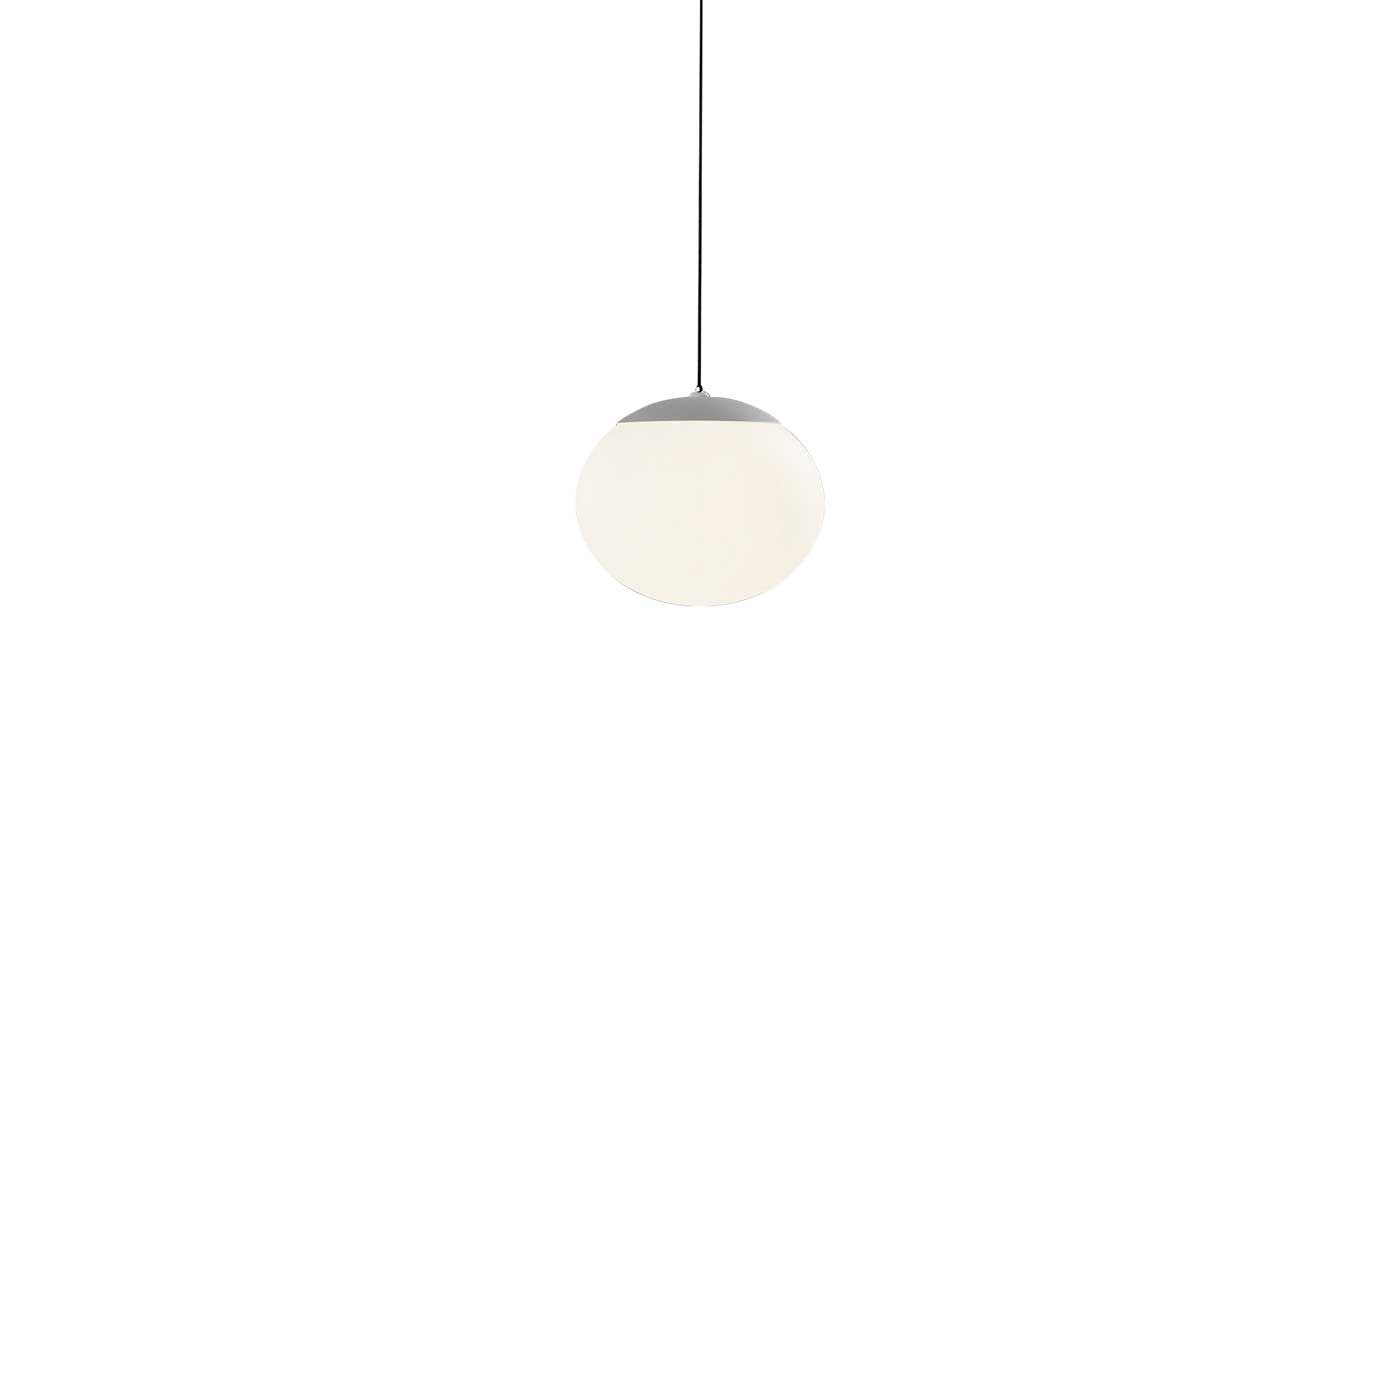 Bover Elipse S 30 Outdoor Pendant Lamp Diameter Cm At